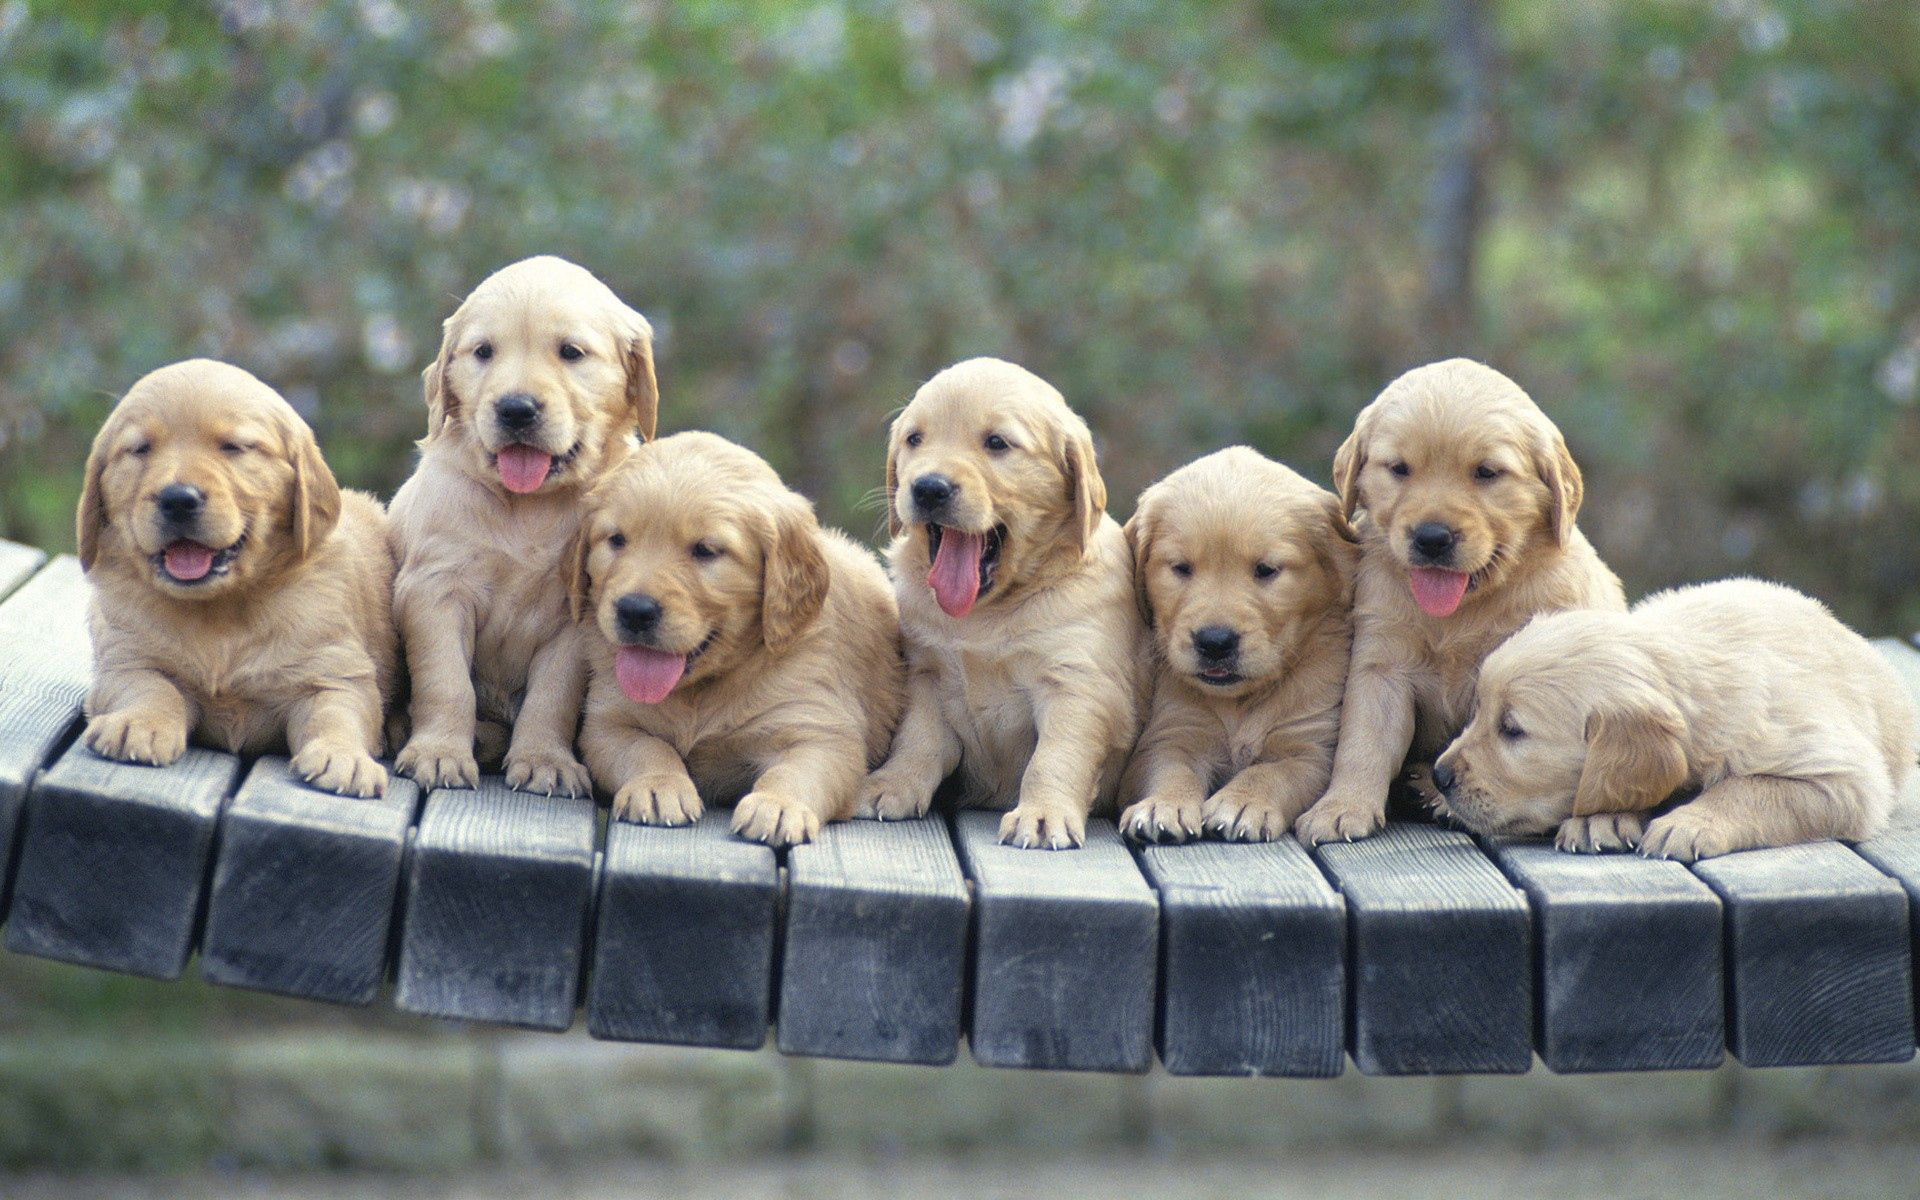 103905 download wallpaper Animals, Puppies, Dogs, Lots Of, Multitude screensavers and pictures for free